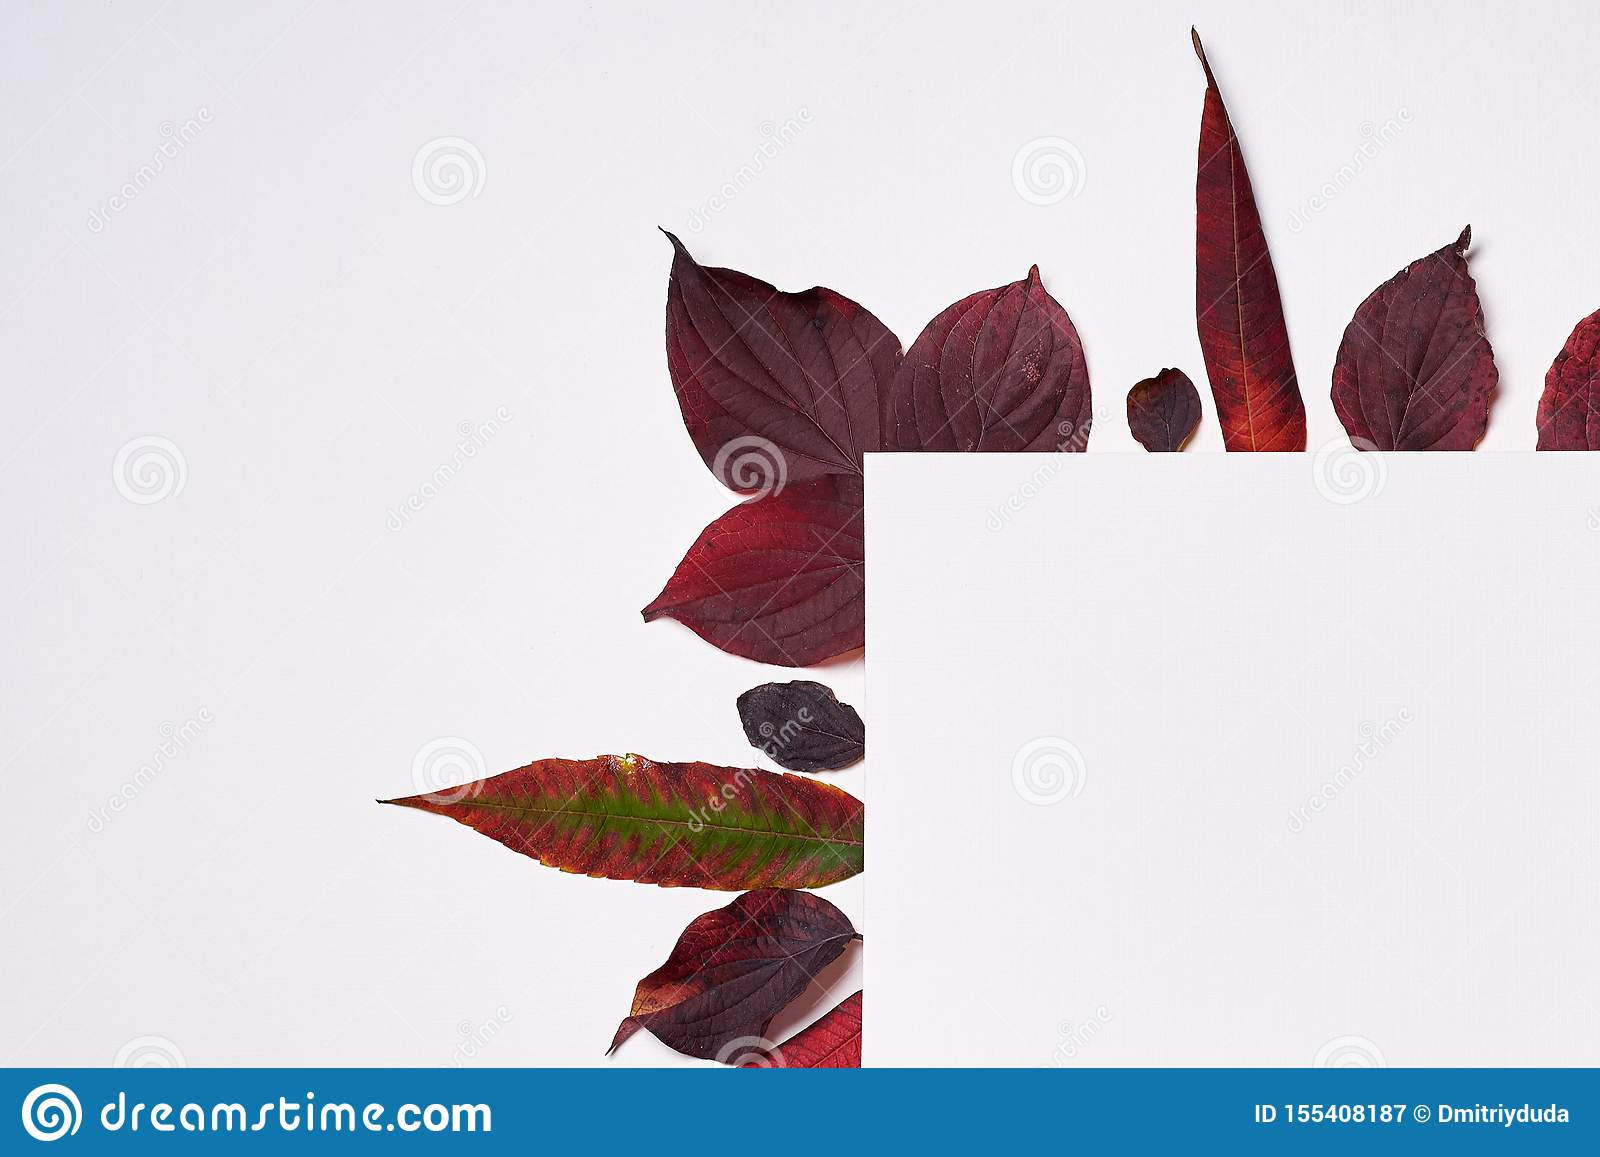 Autumn composition. Frame made of blank paper and leaves on white background. Fall concept. Autumn thanksgiving texture. Flat lay.